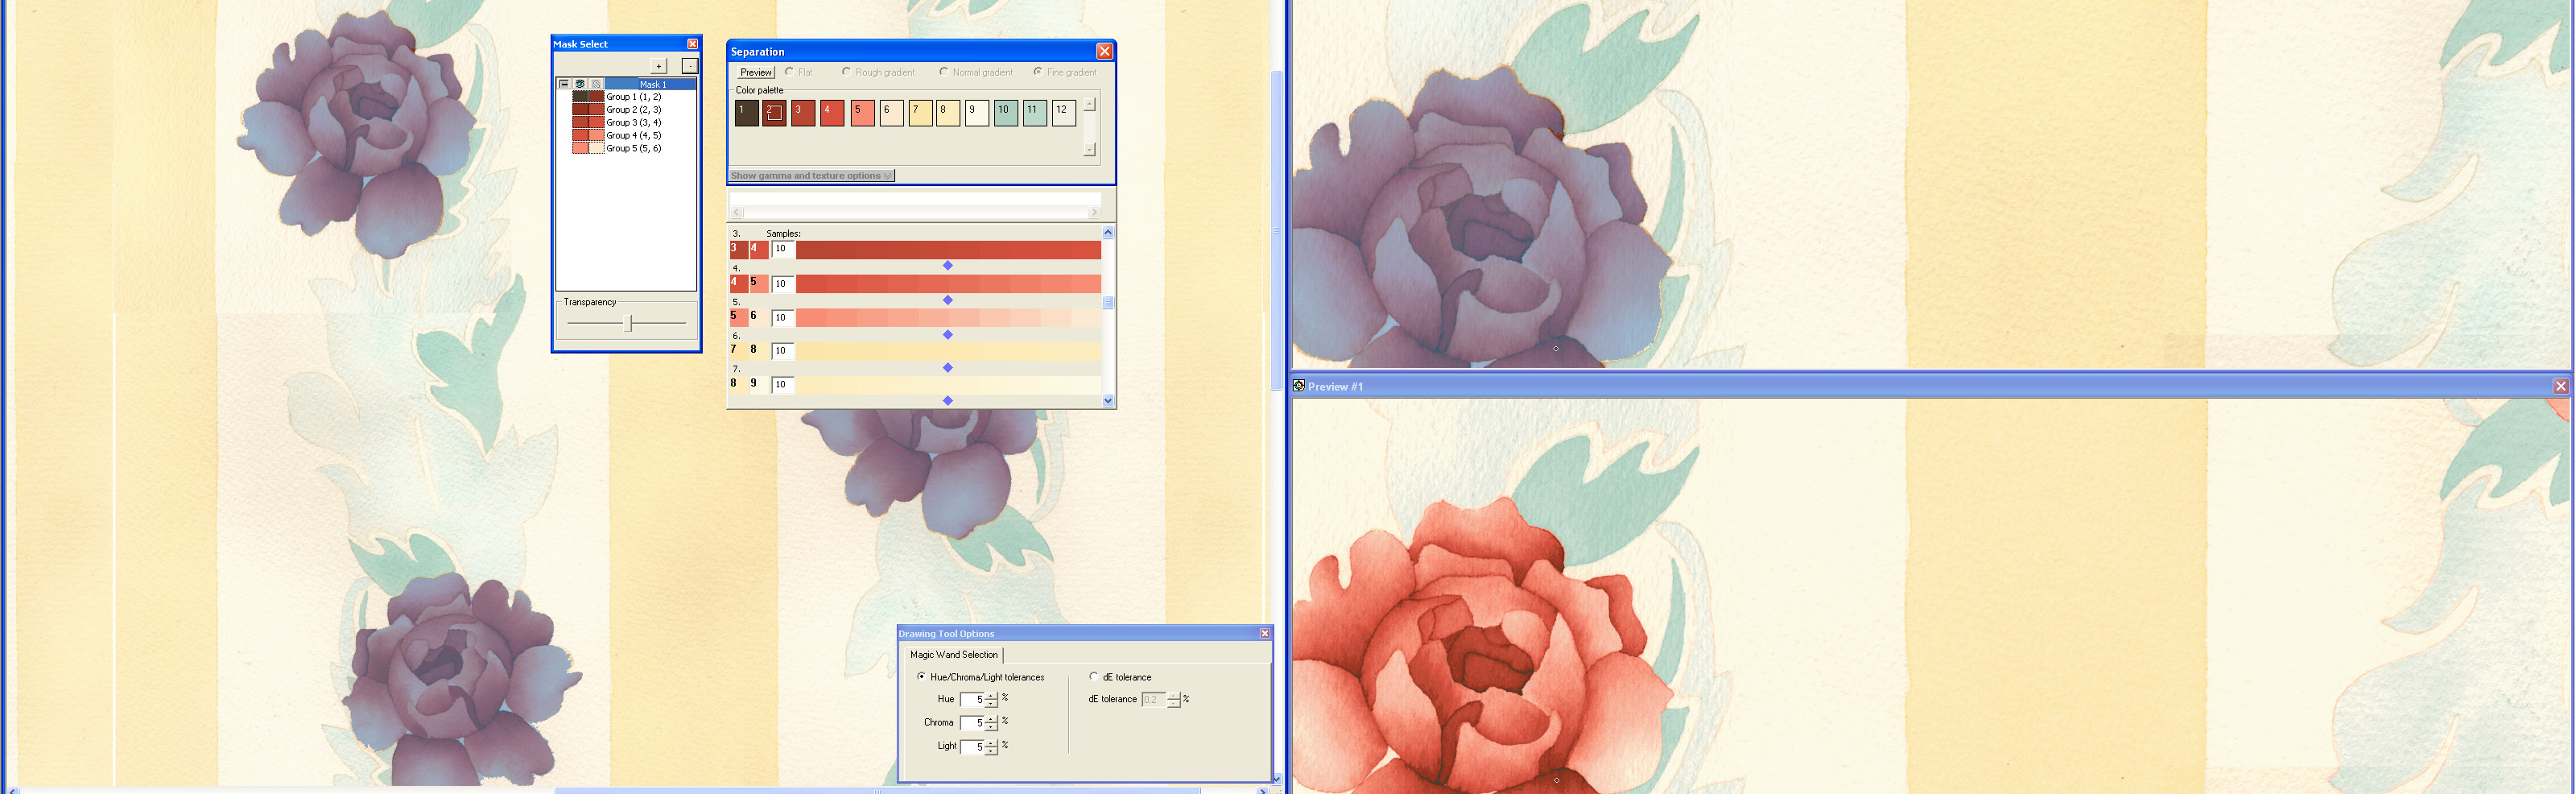 screen shot showing tonal separation methods being used on purple and pink rose design